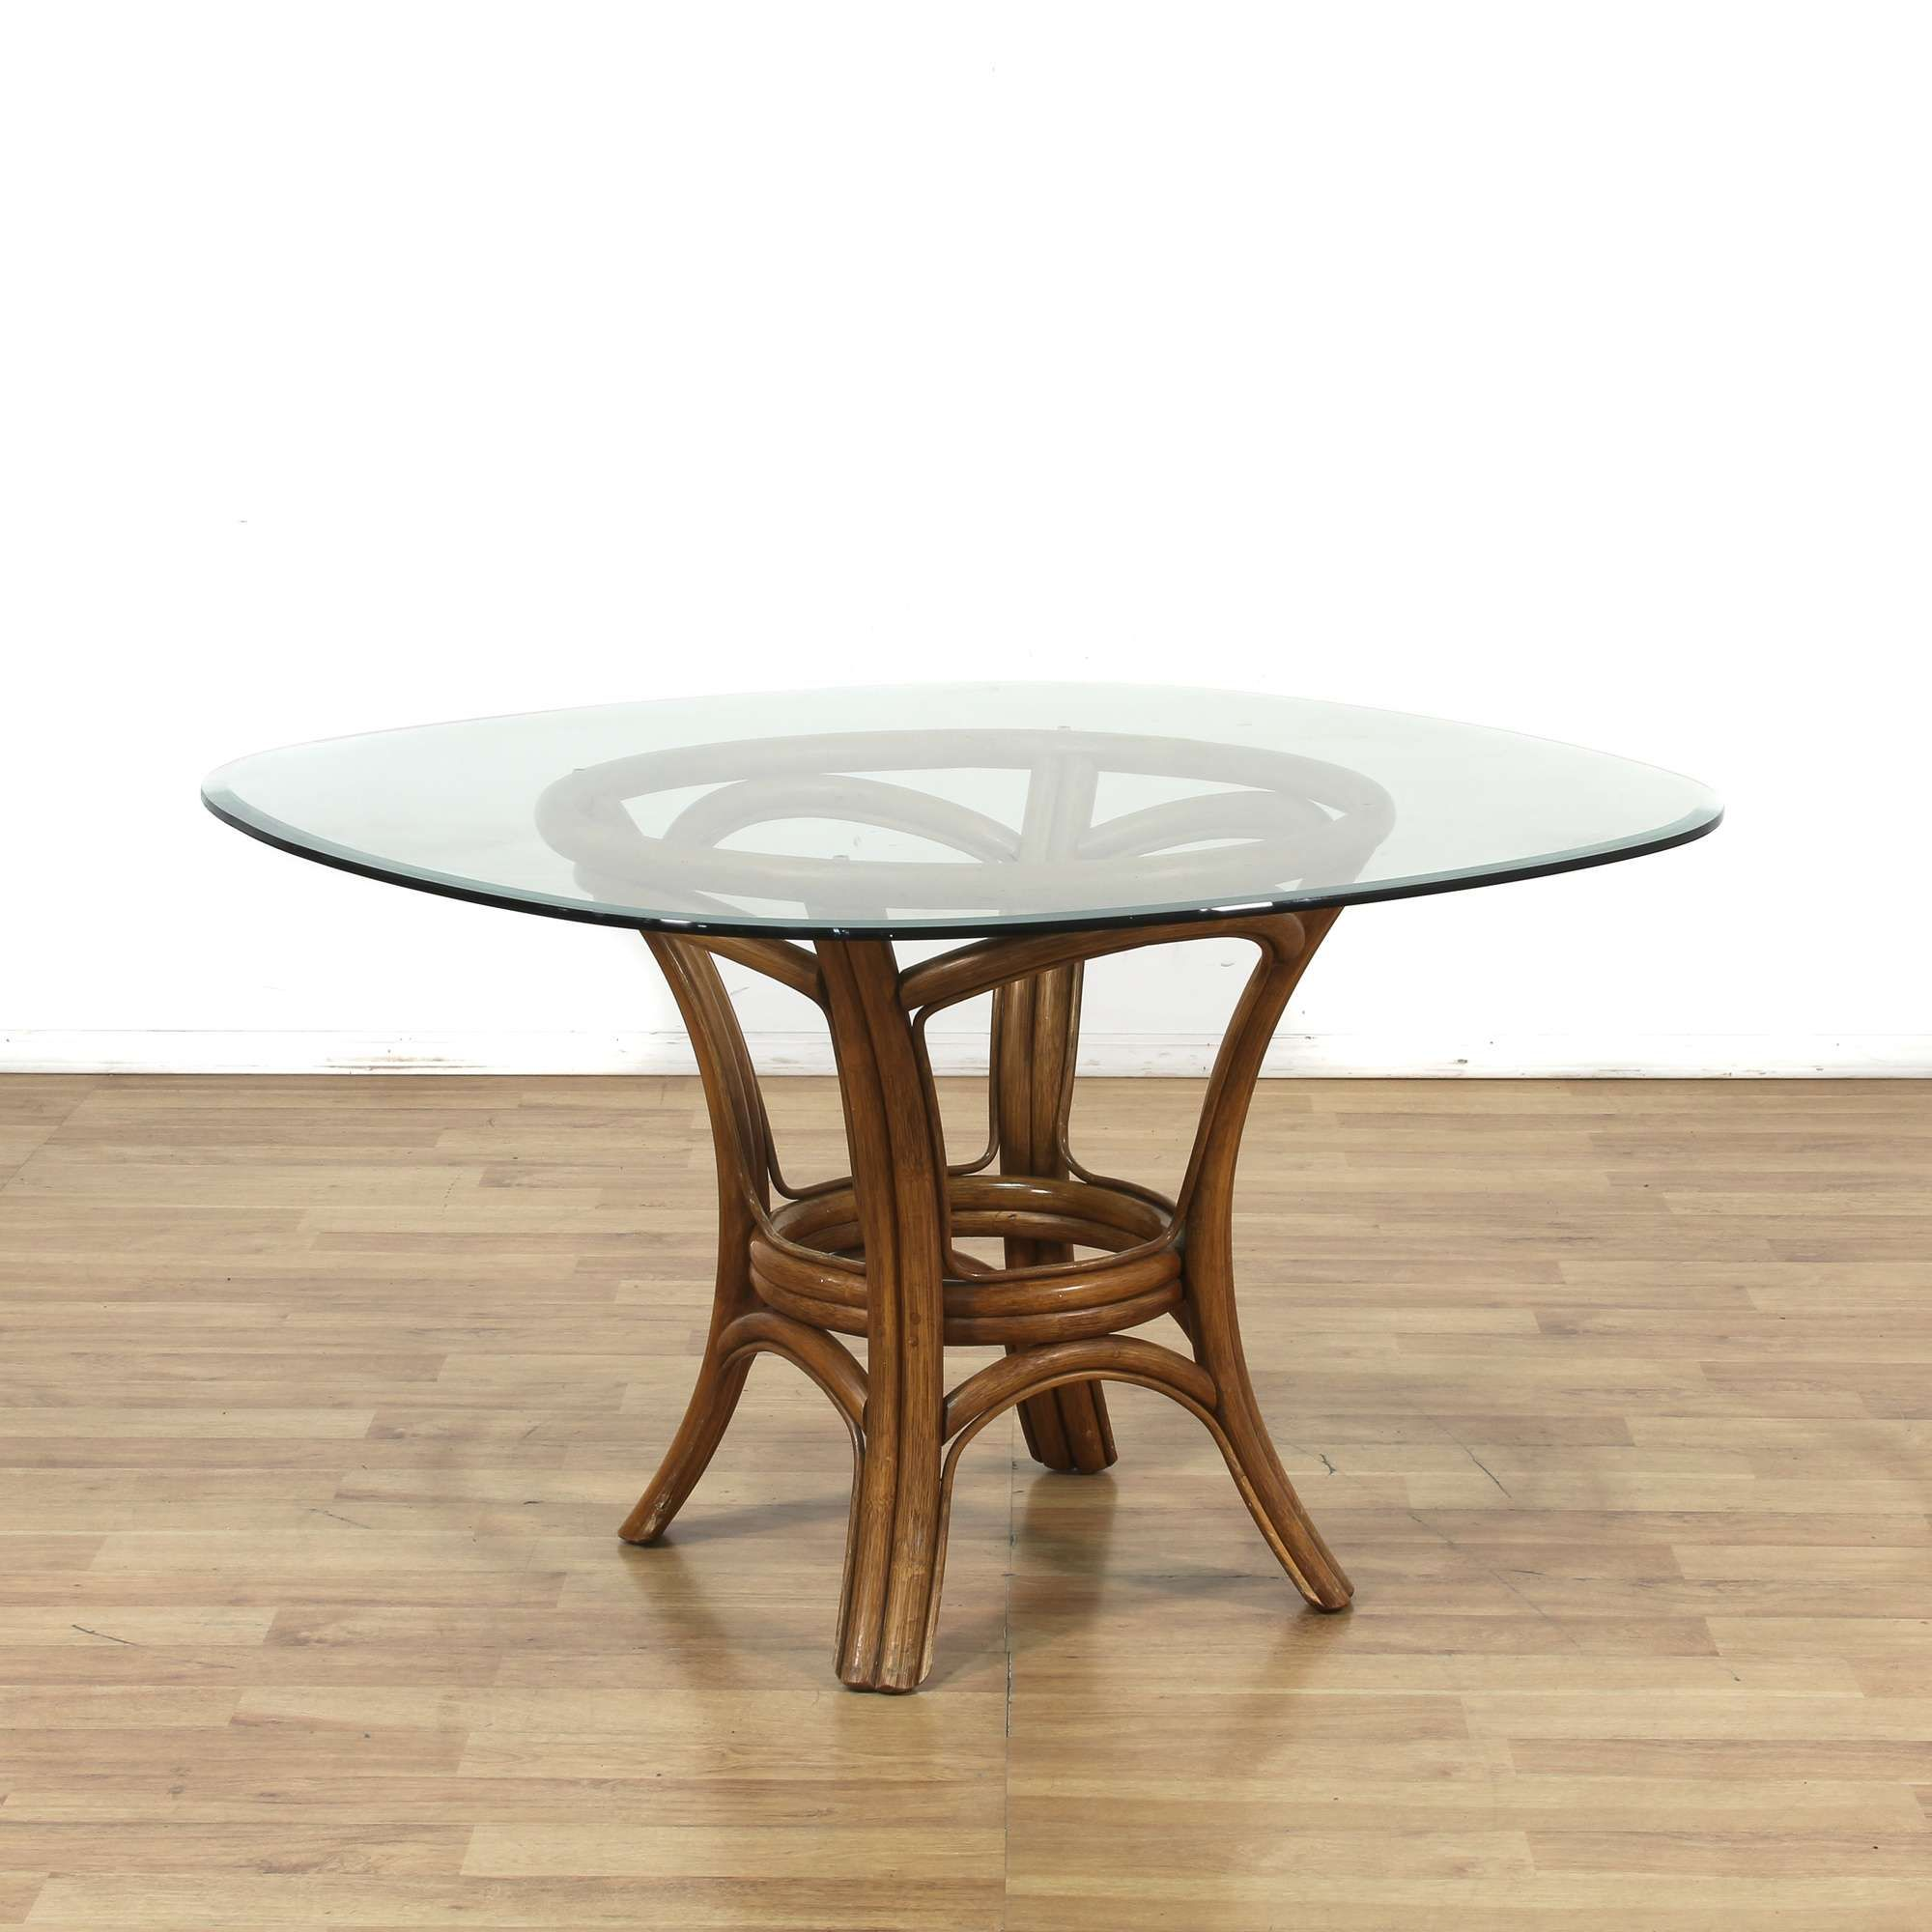 Rattan Bamboo Round Dining Table W Glass Top Loveseat Vintage Round Dining Table Dining Table Round Dining